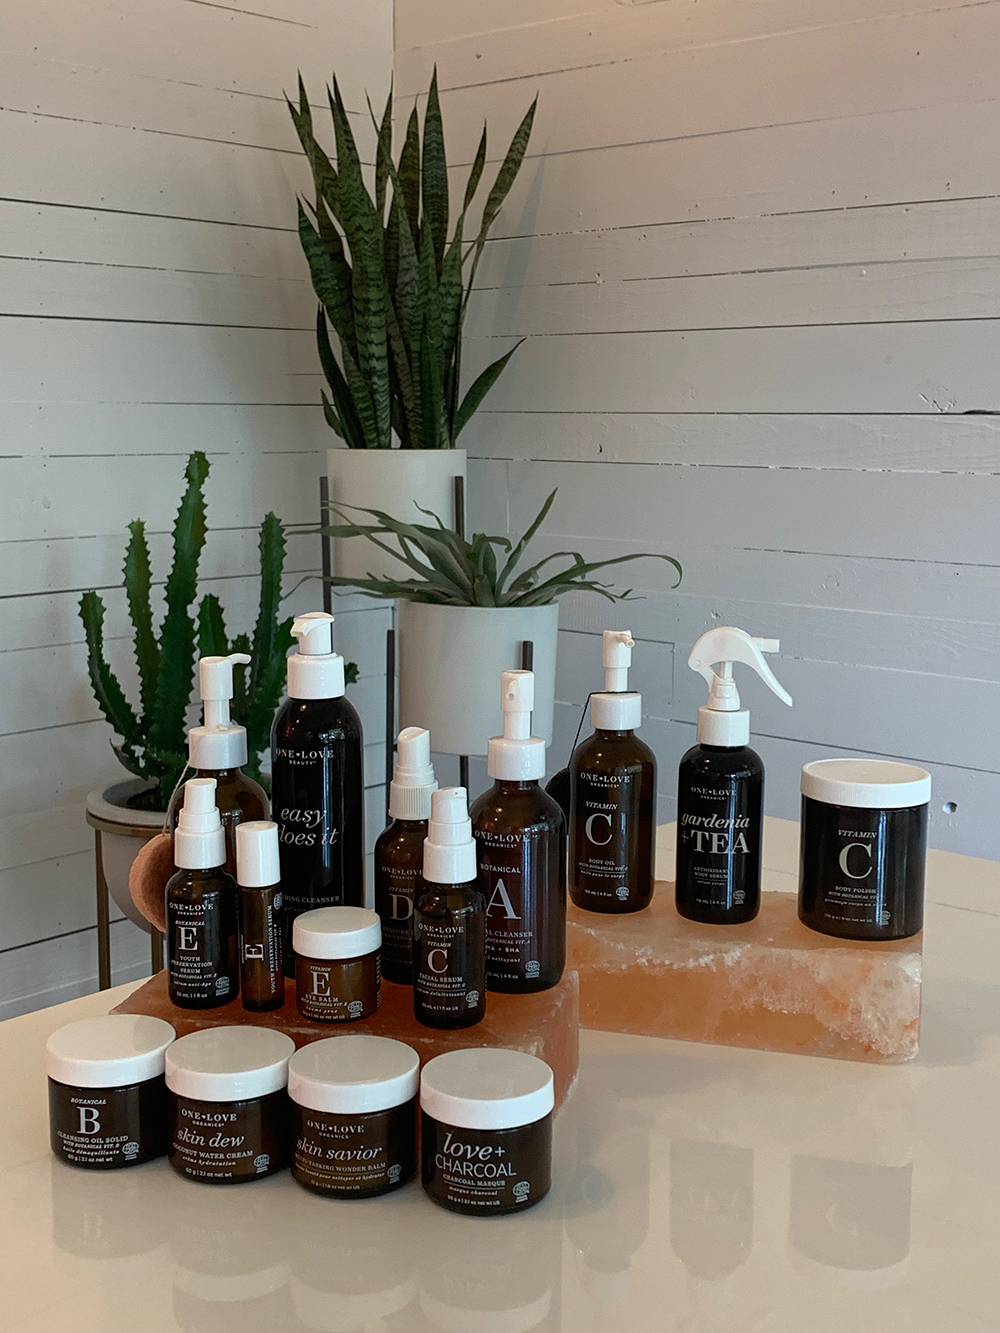 One Love Organics' award-winning skin care products are produced in small batches at the company's ECOCERT® licensed manufacturing facility in the Golden Isles of Georgia.